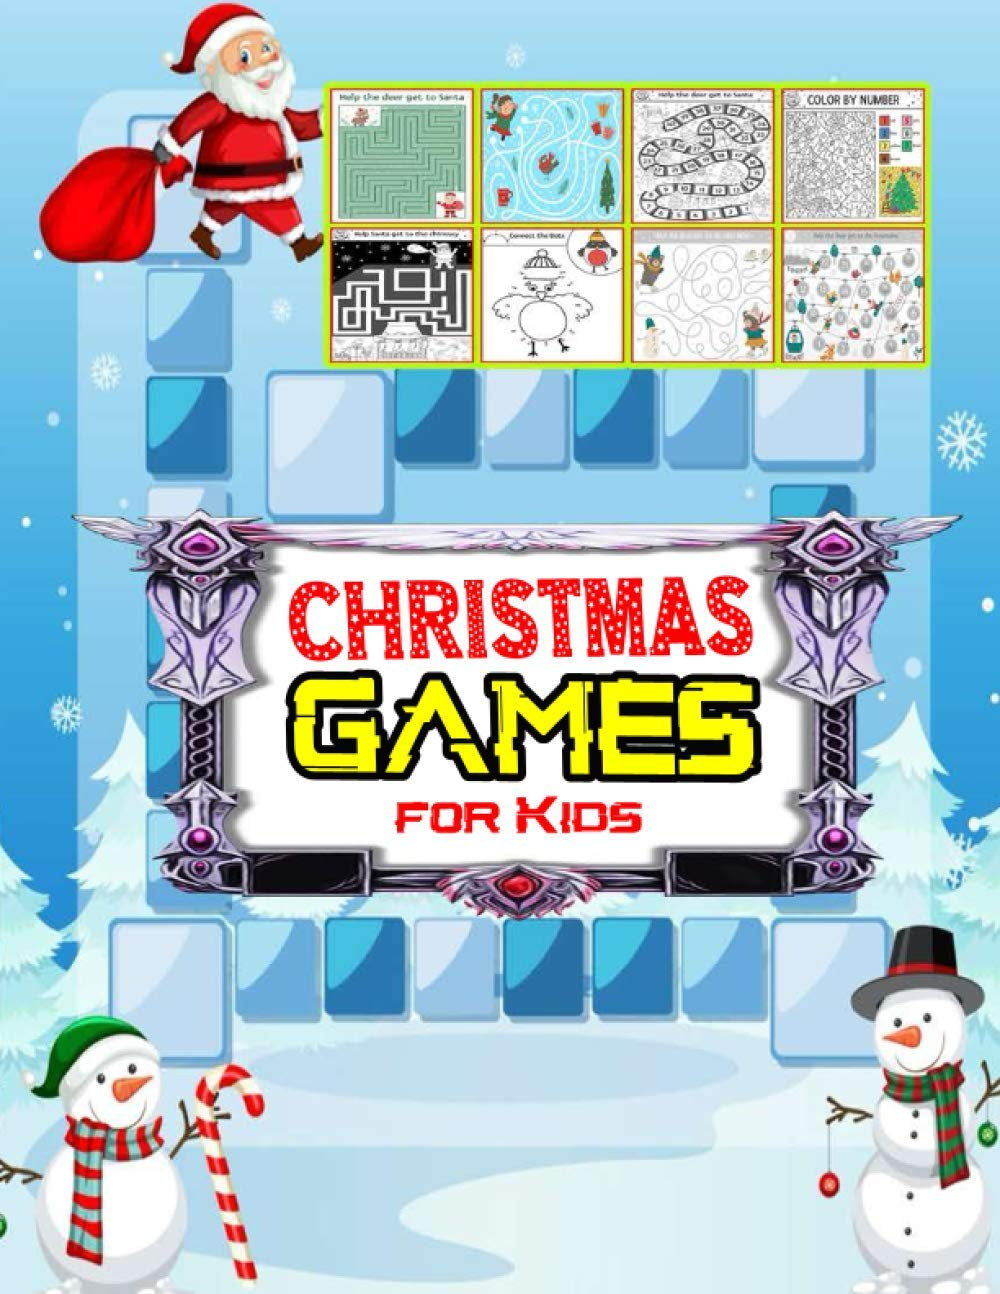 Christmas Games For Kids: New Games And Activity Book For Your Kids-great Stress Relief Gaming And Activity Book-60 Page